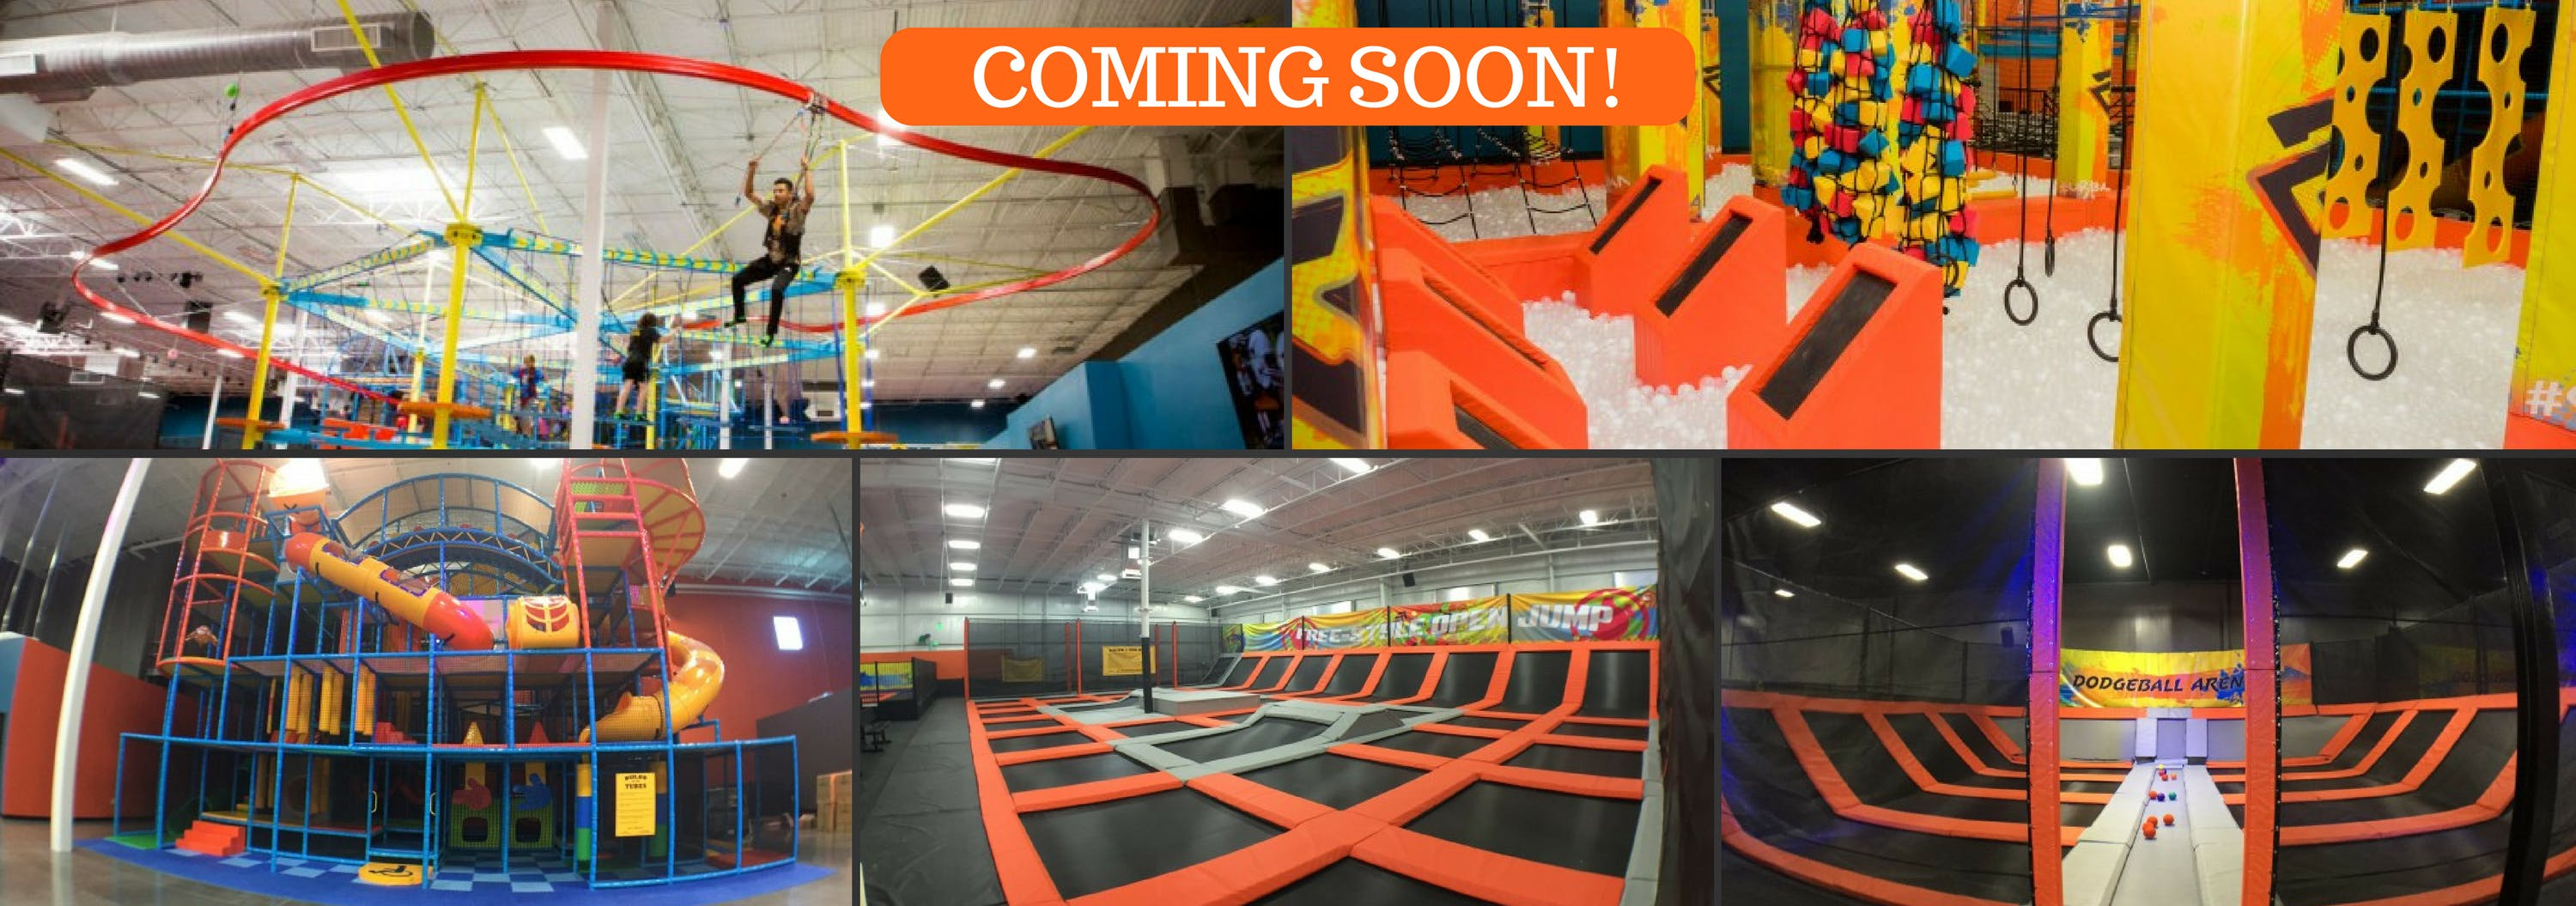 Urban Air Adventure ParkR Secures Reno NV Location